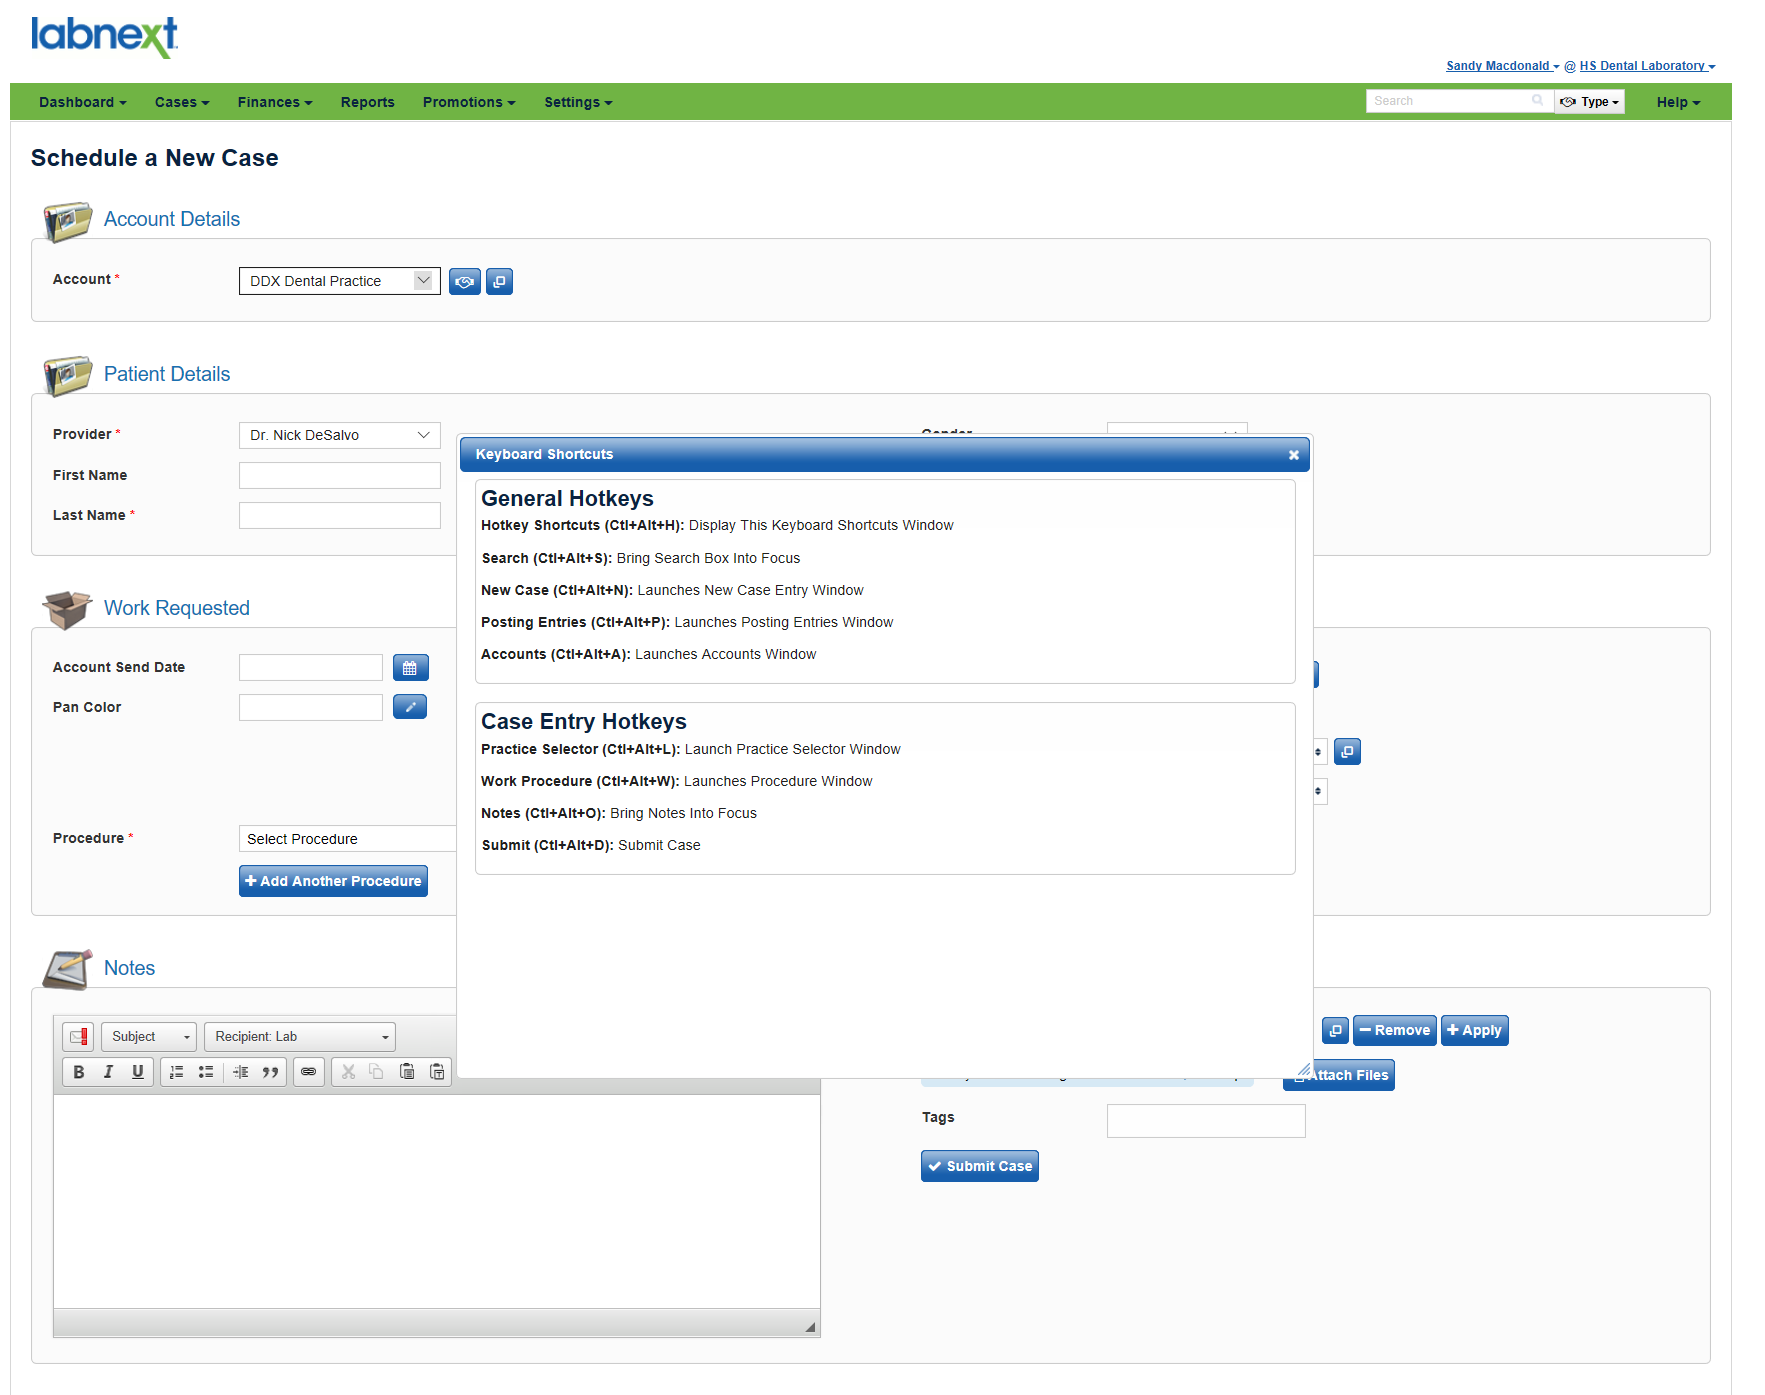 Learn More About Labnext Keyboard Shortcuts and Tracking